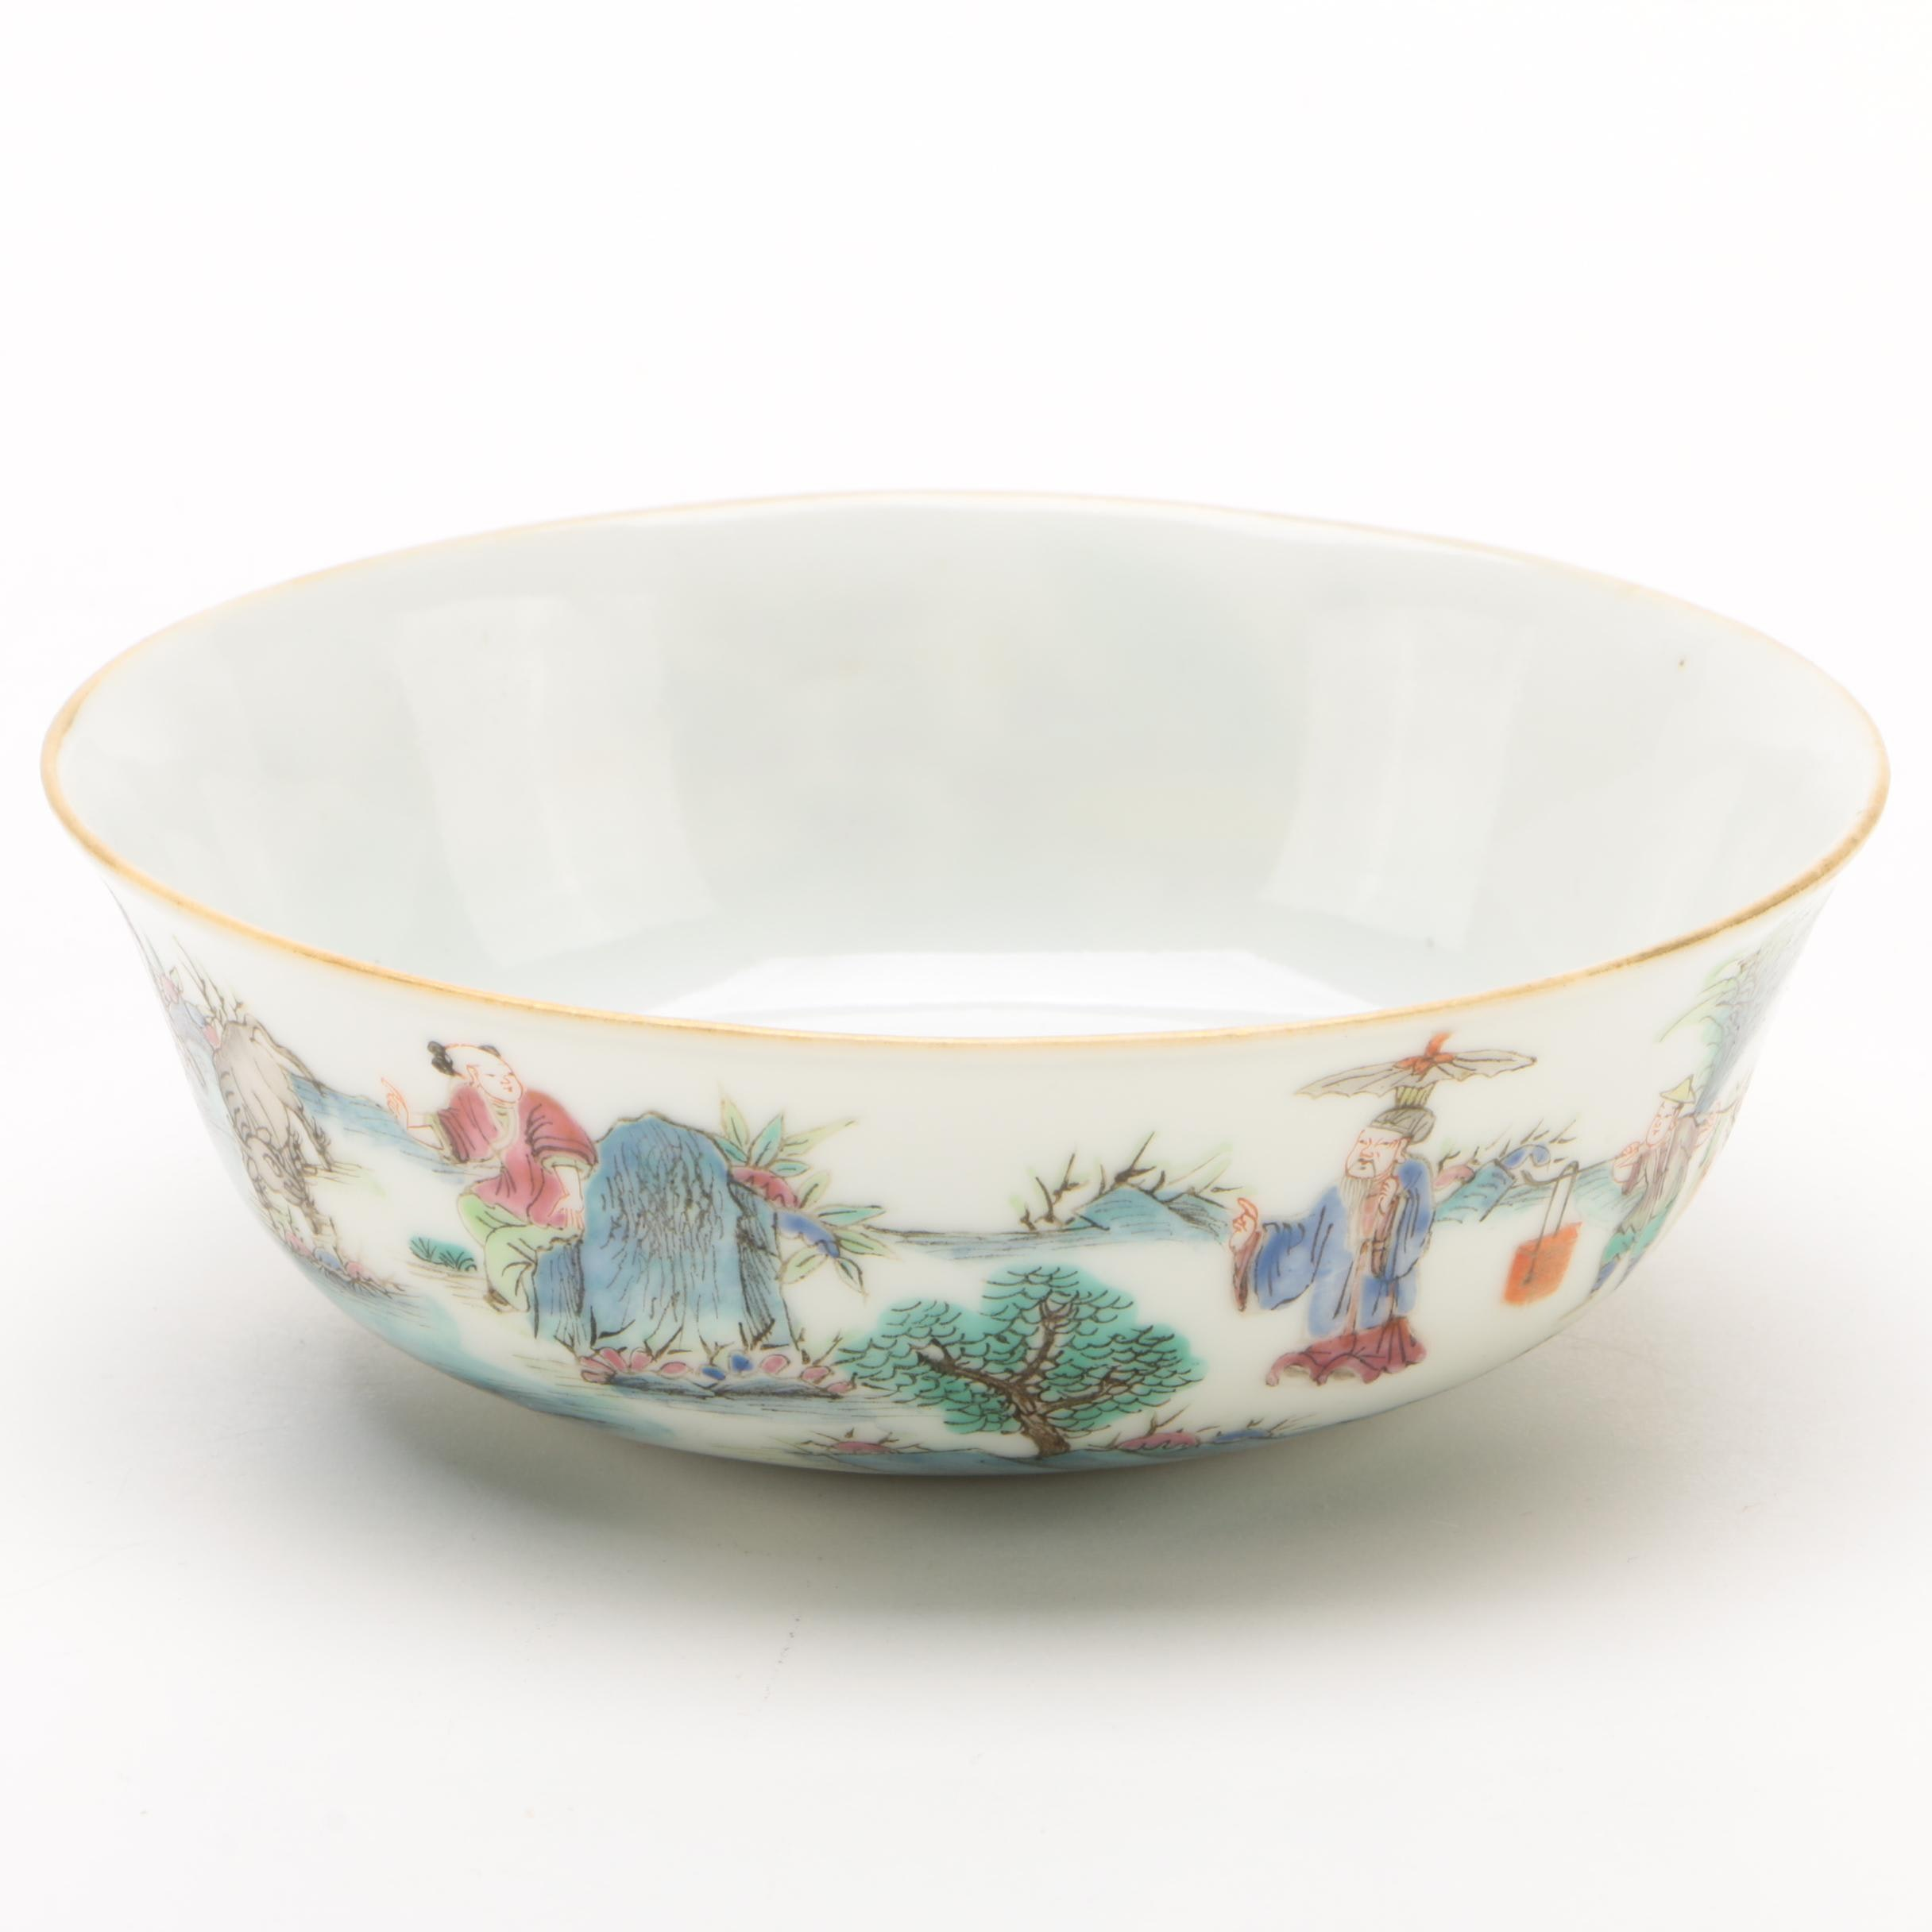 Chinese Hand-Painted Porcelain Bowl with Pastoral Scene, Qing Dynasty